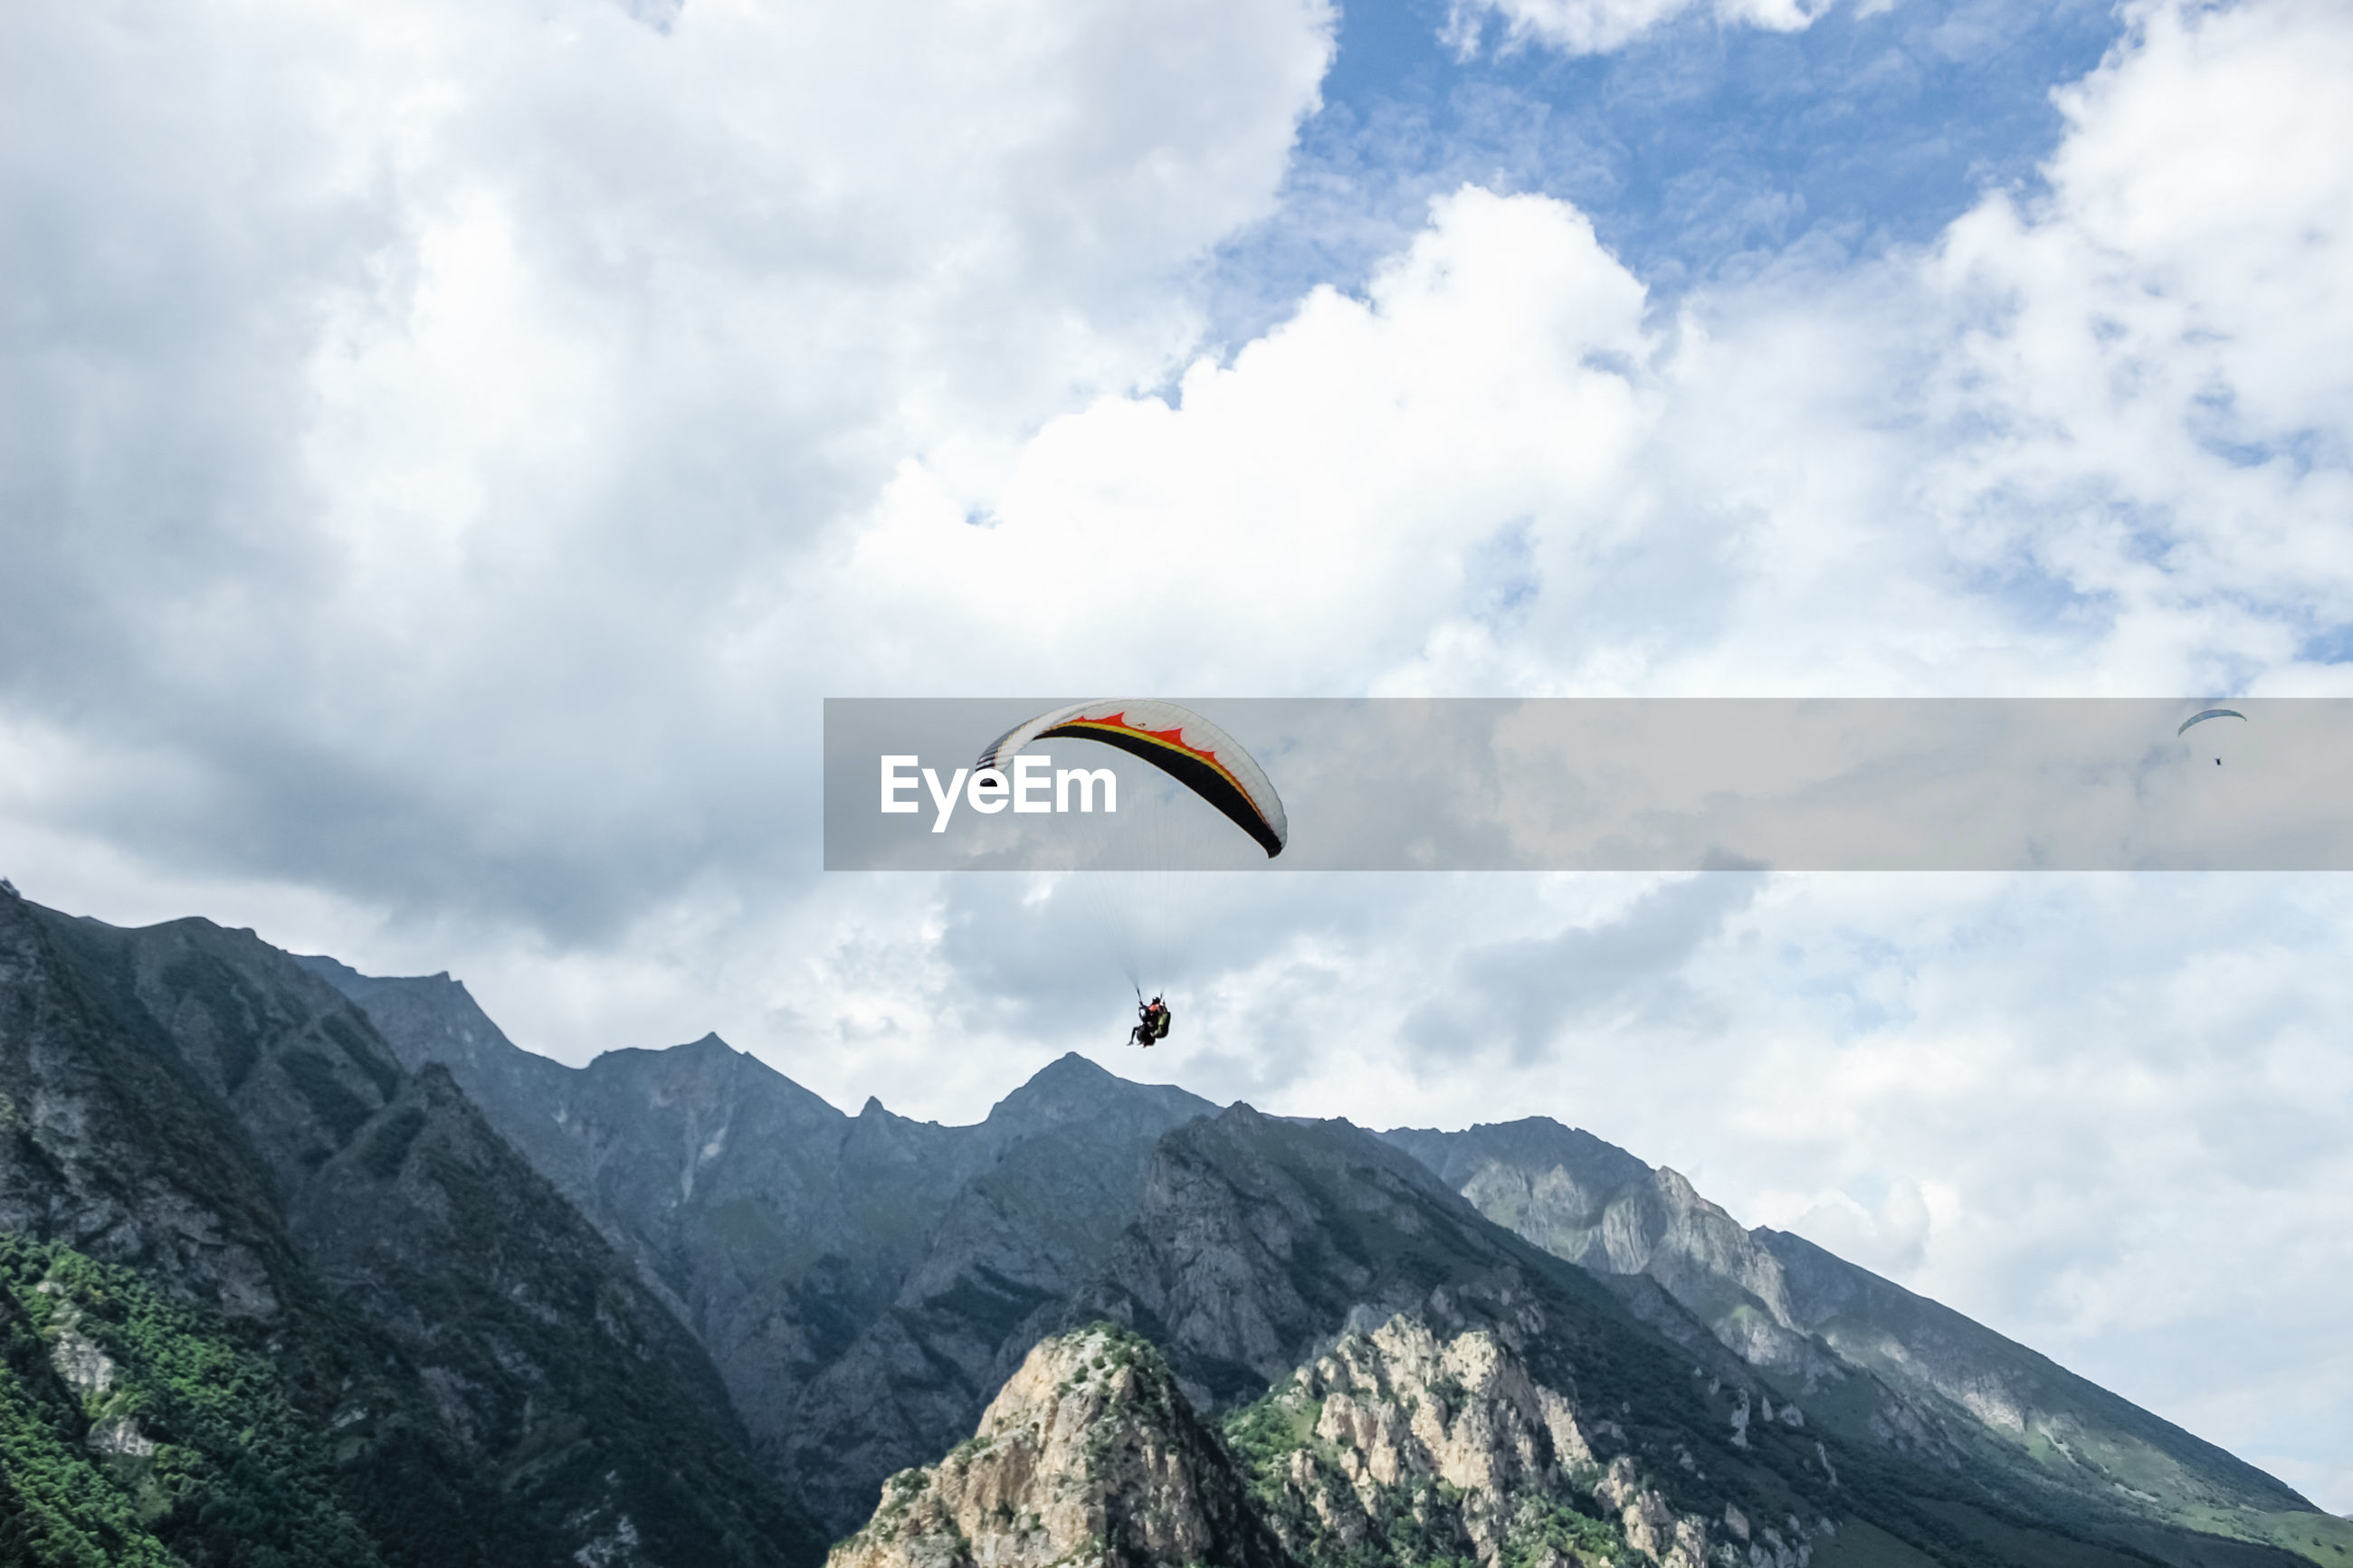 LOW ANGLE VIEW OF PARAGLIDING AGAINST MOUNTAIN